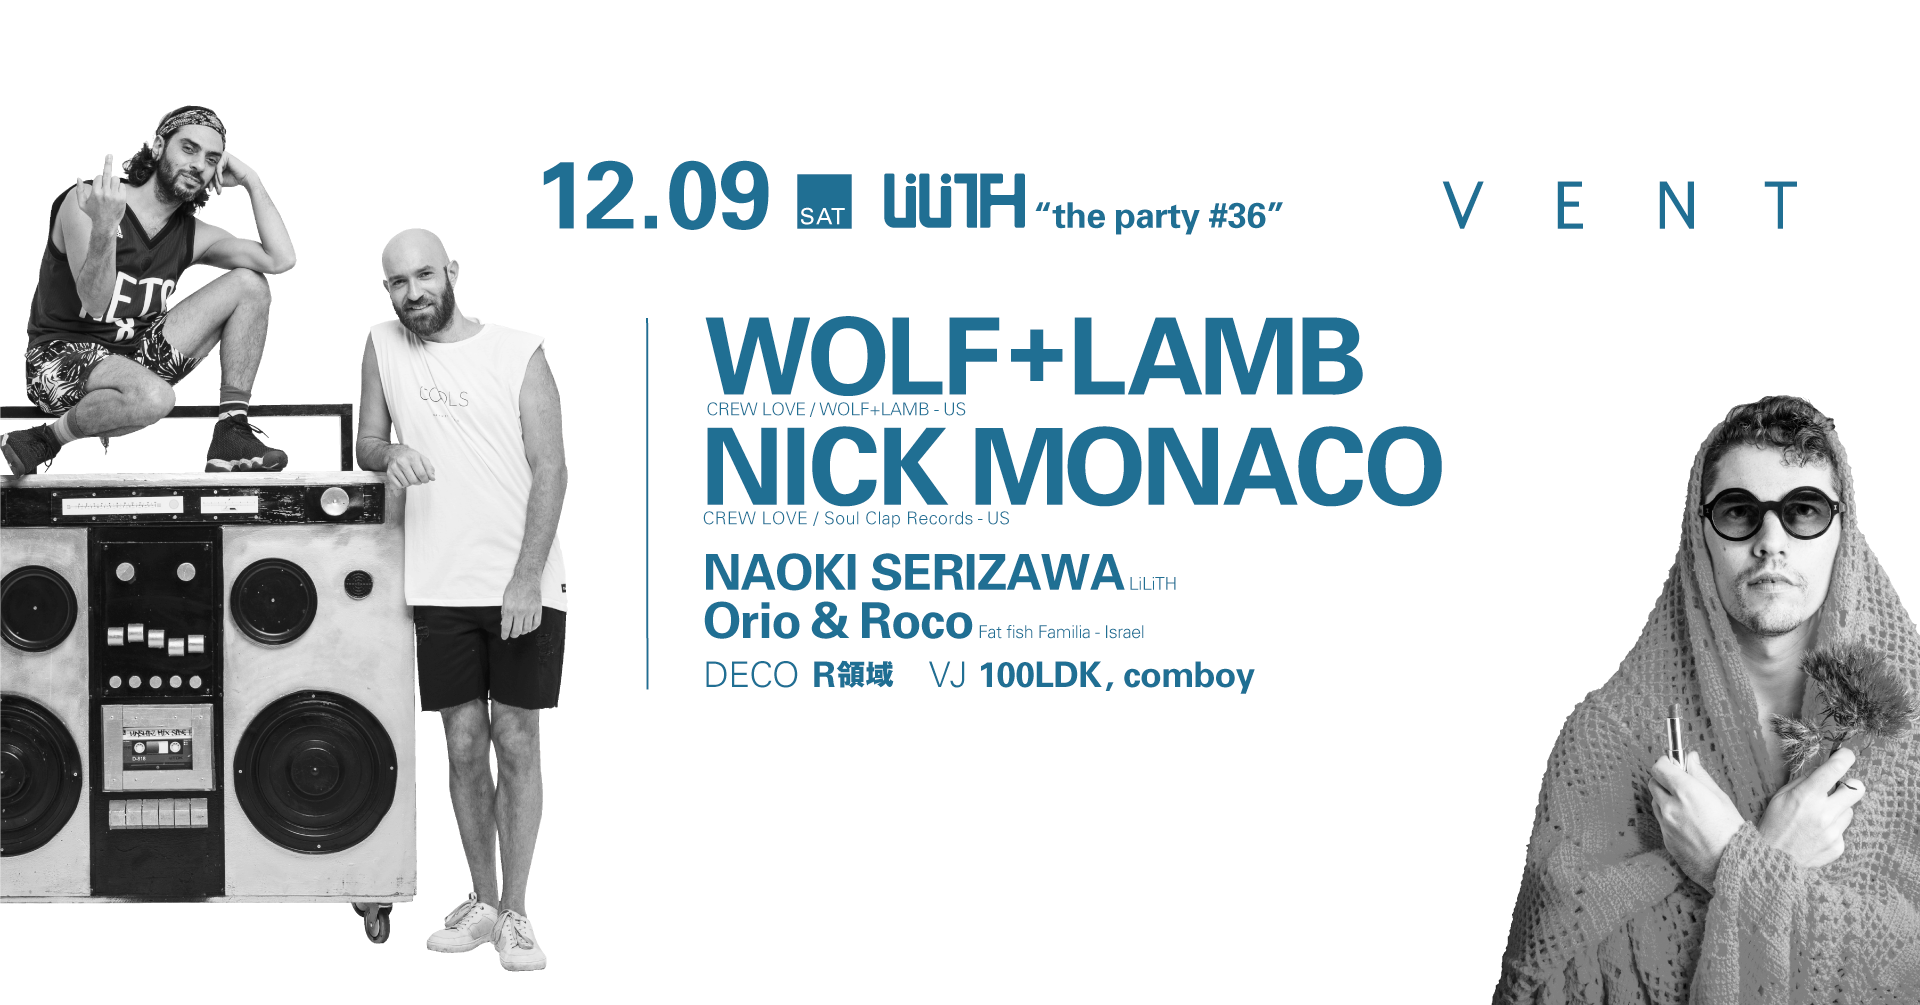 Wolf+lamb and Nick Monaco at LiLiTH